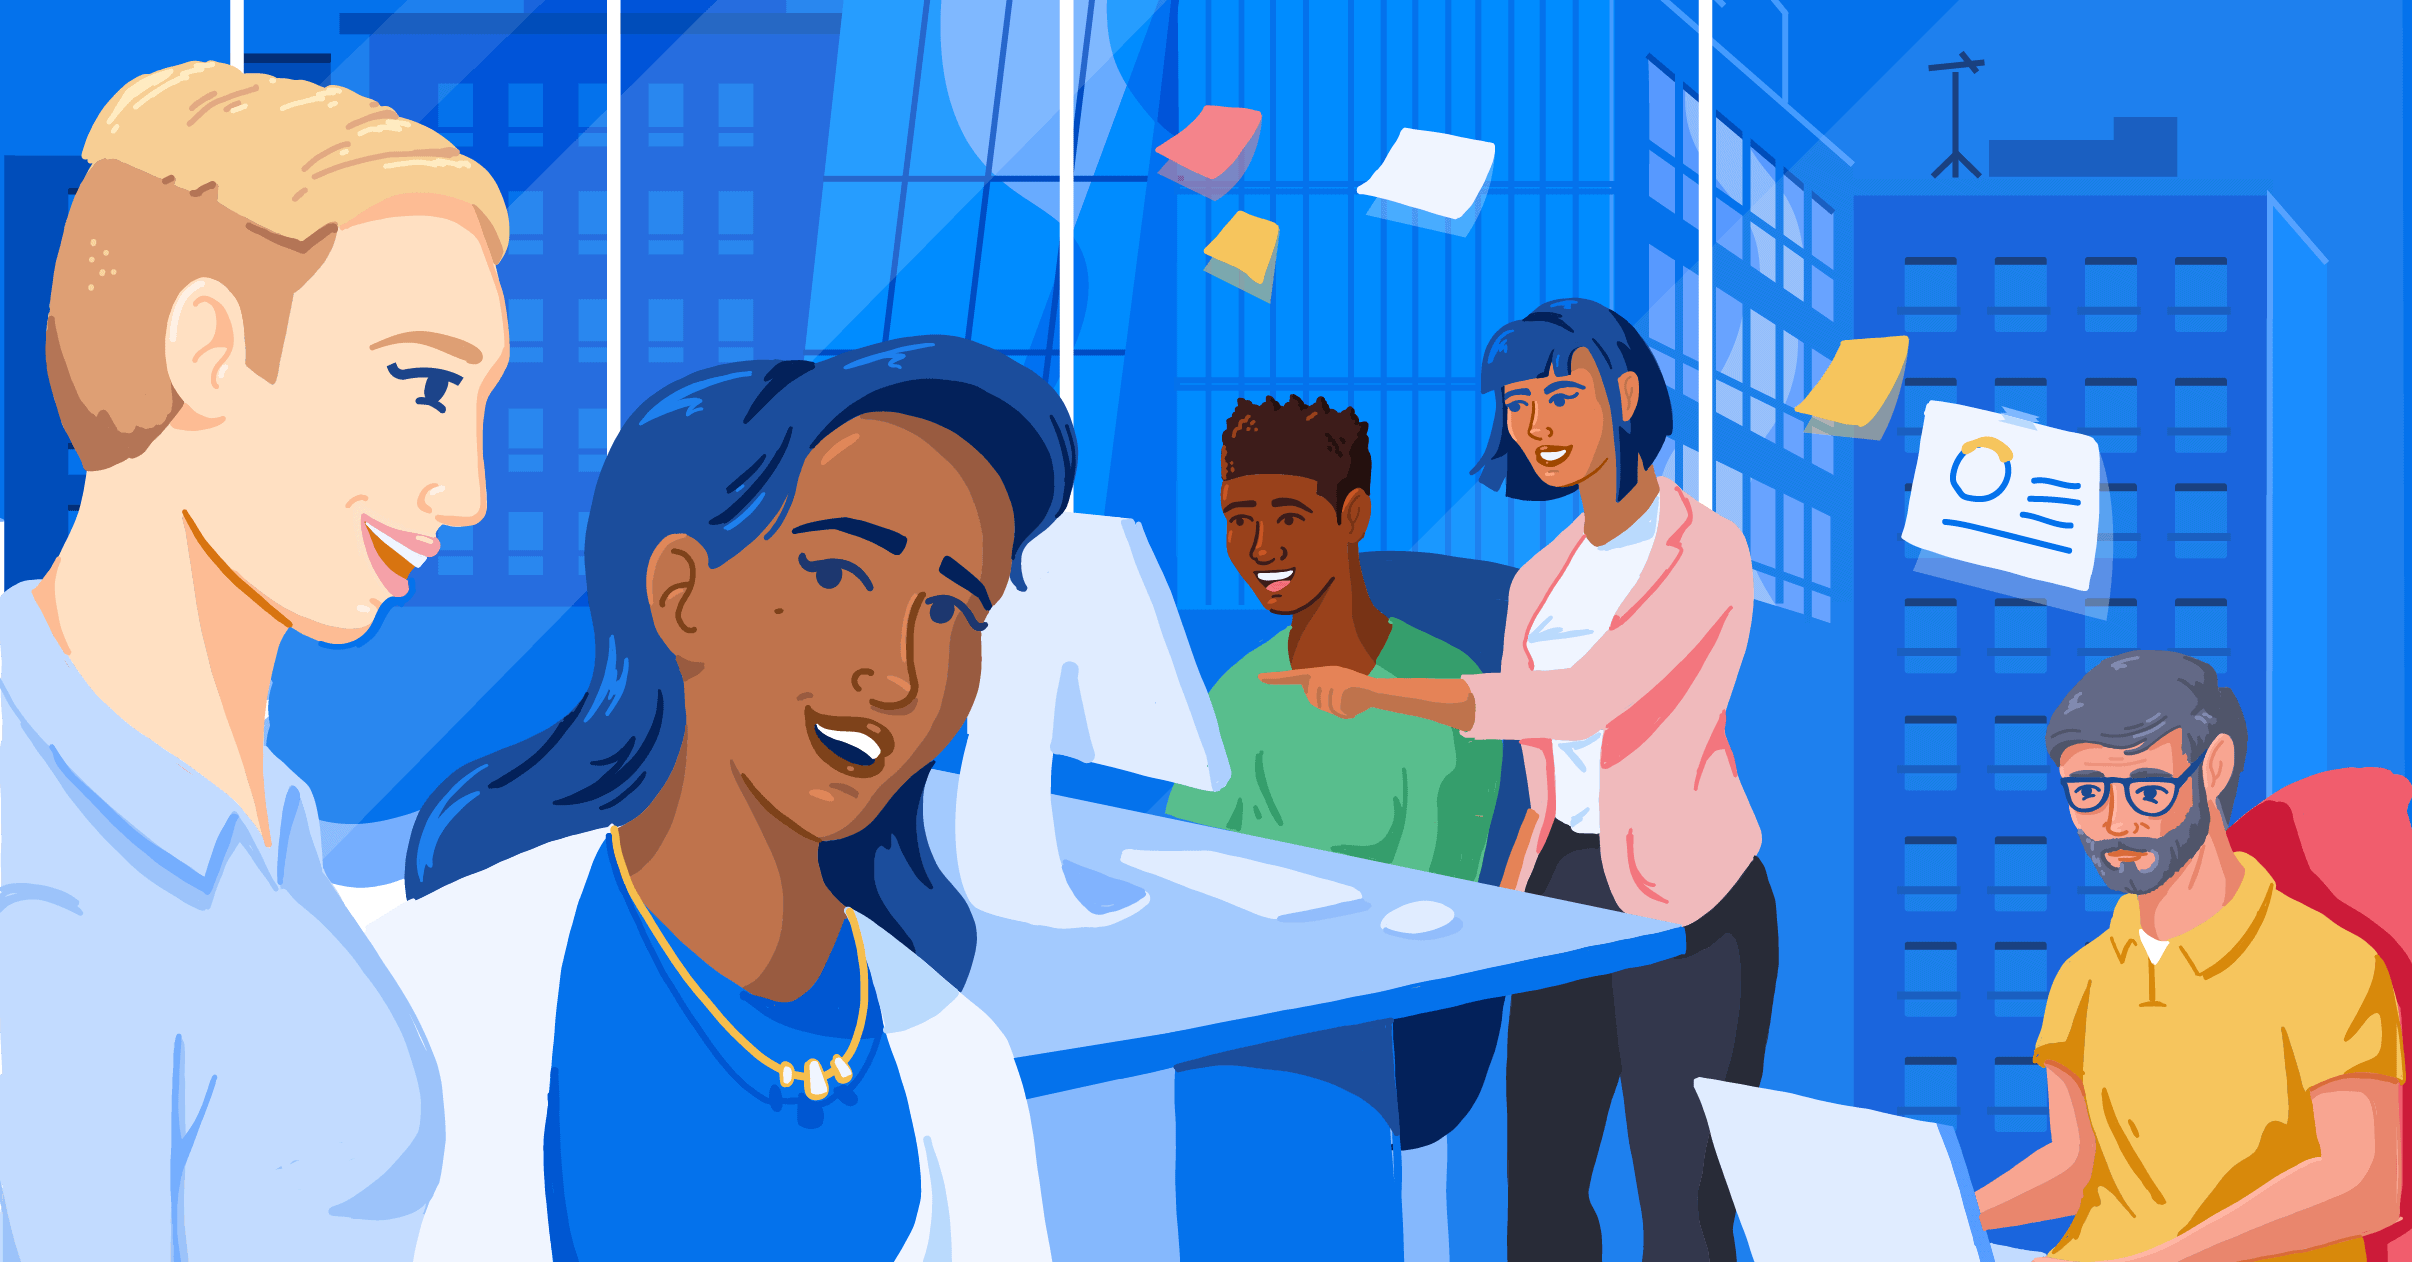 Illustration of people working in an office